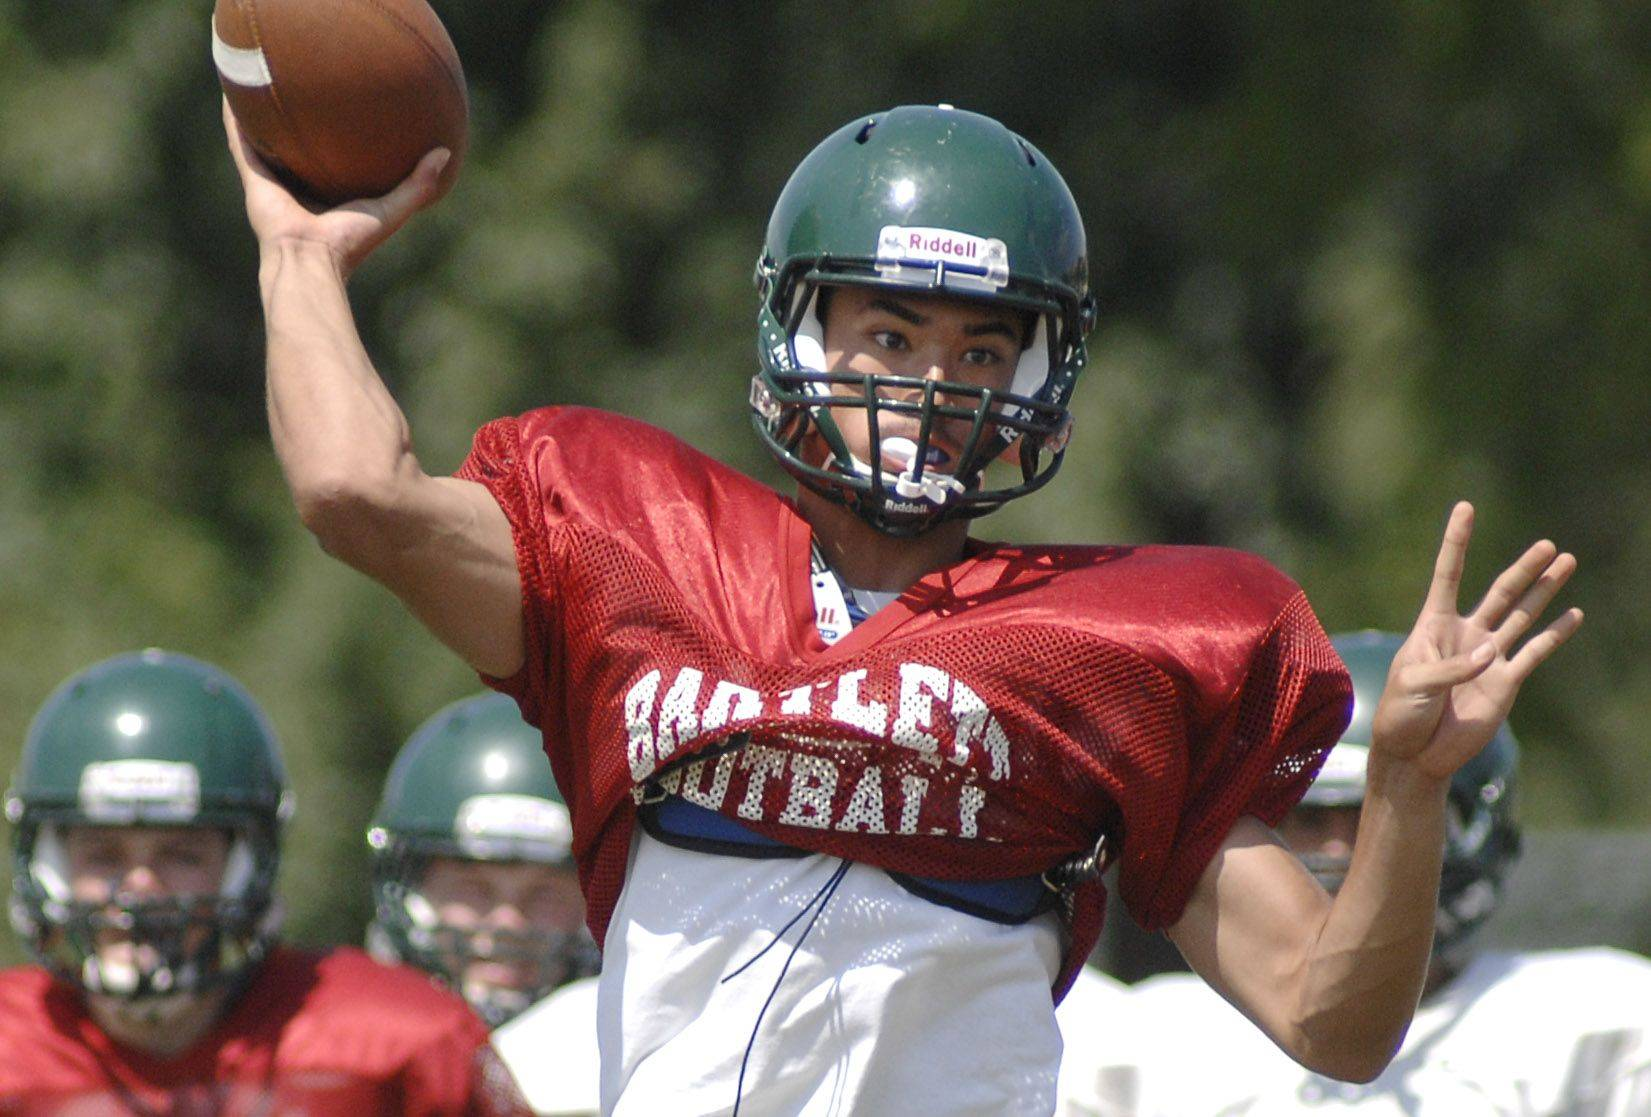 Bartlett quarterback AJ Bilyeu is ready to lead the Hawks again this season.